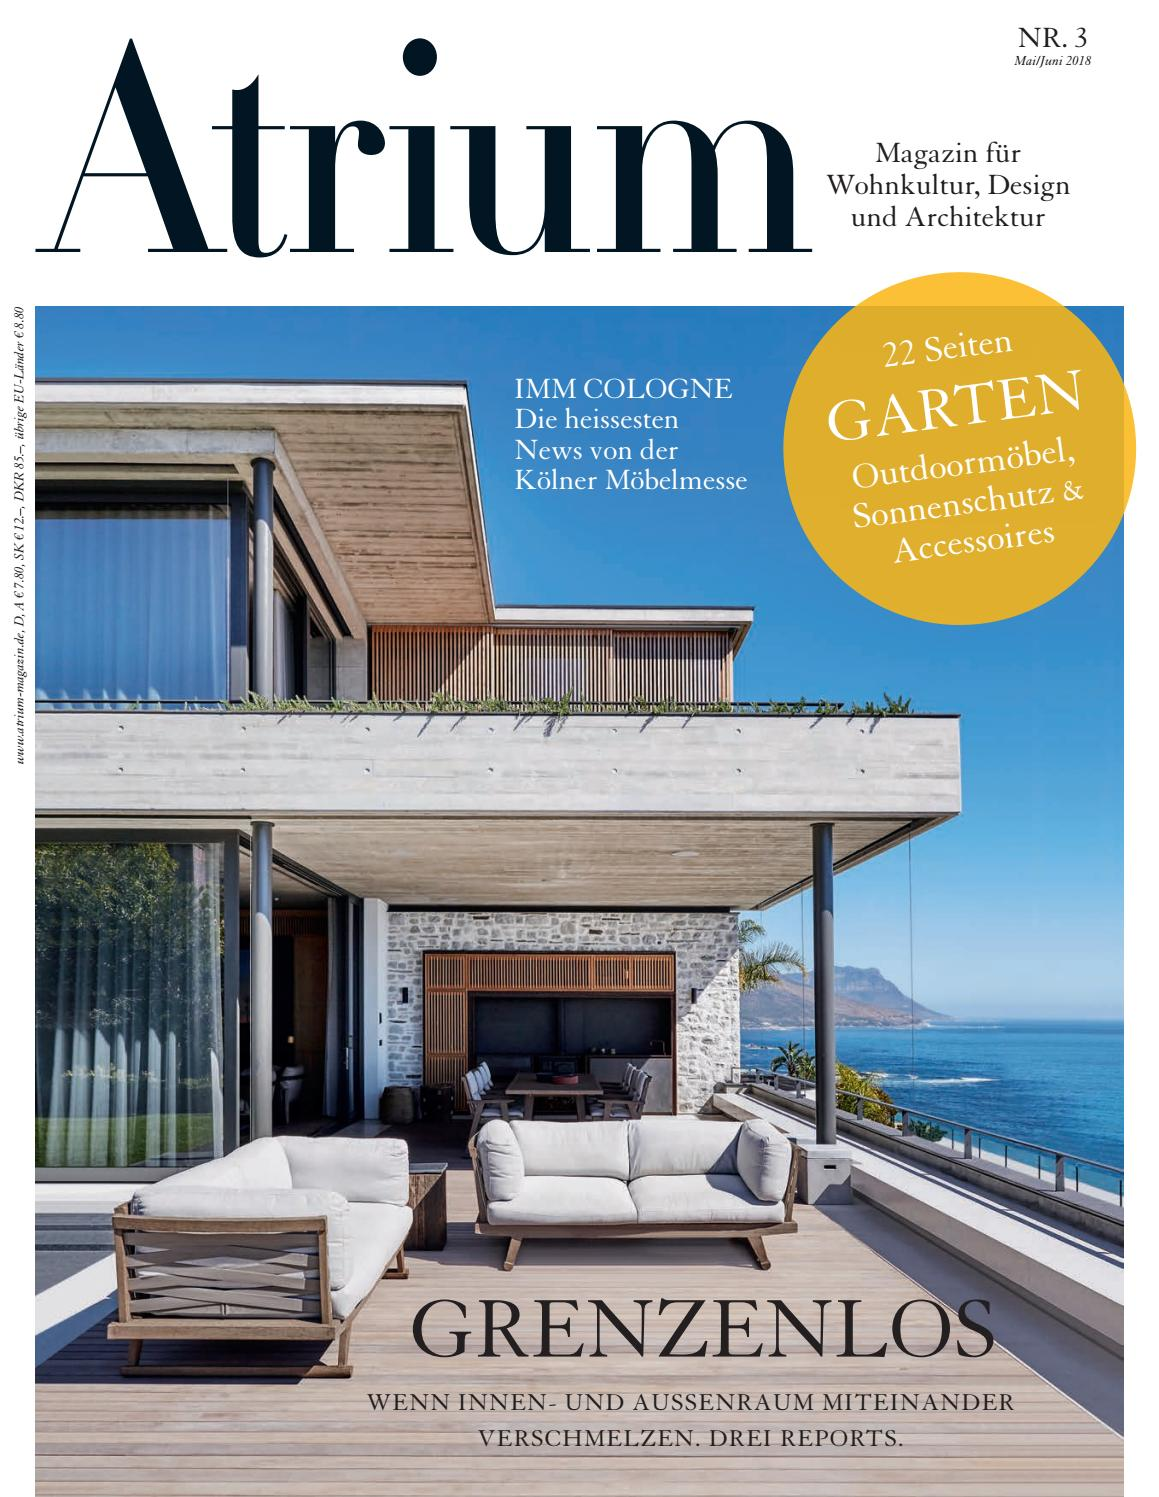 Atrium 03/2018 by Archithema Verlag - issuu